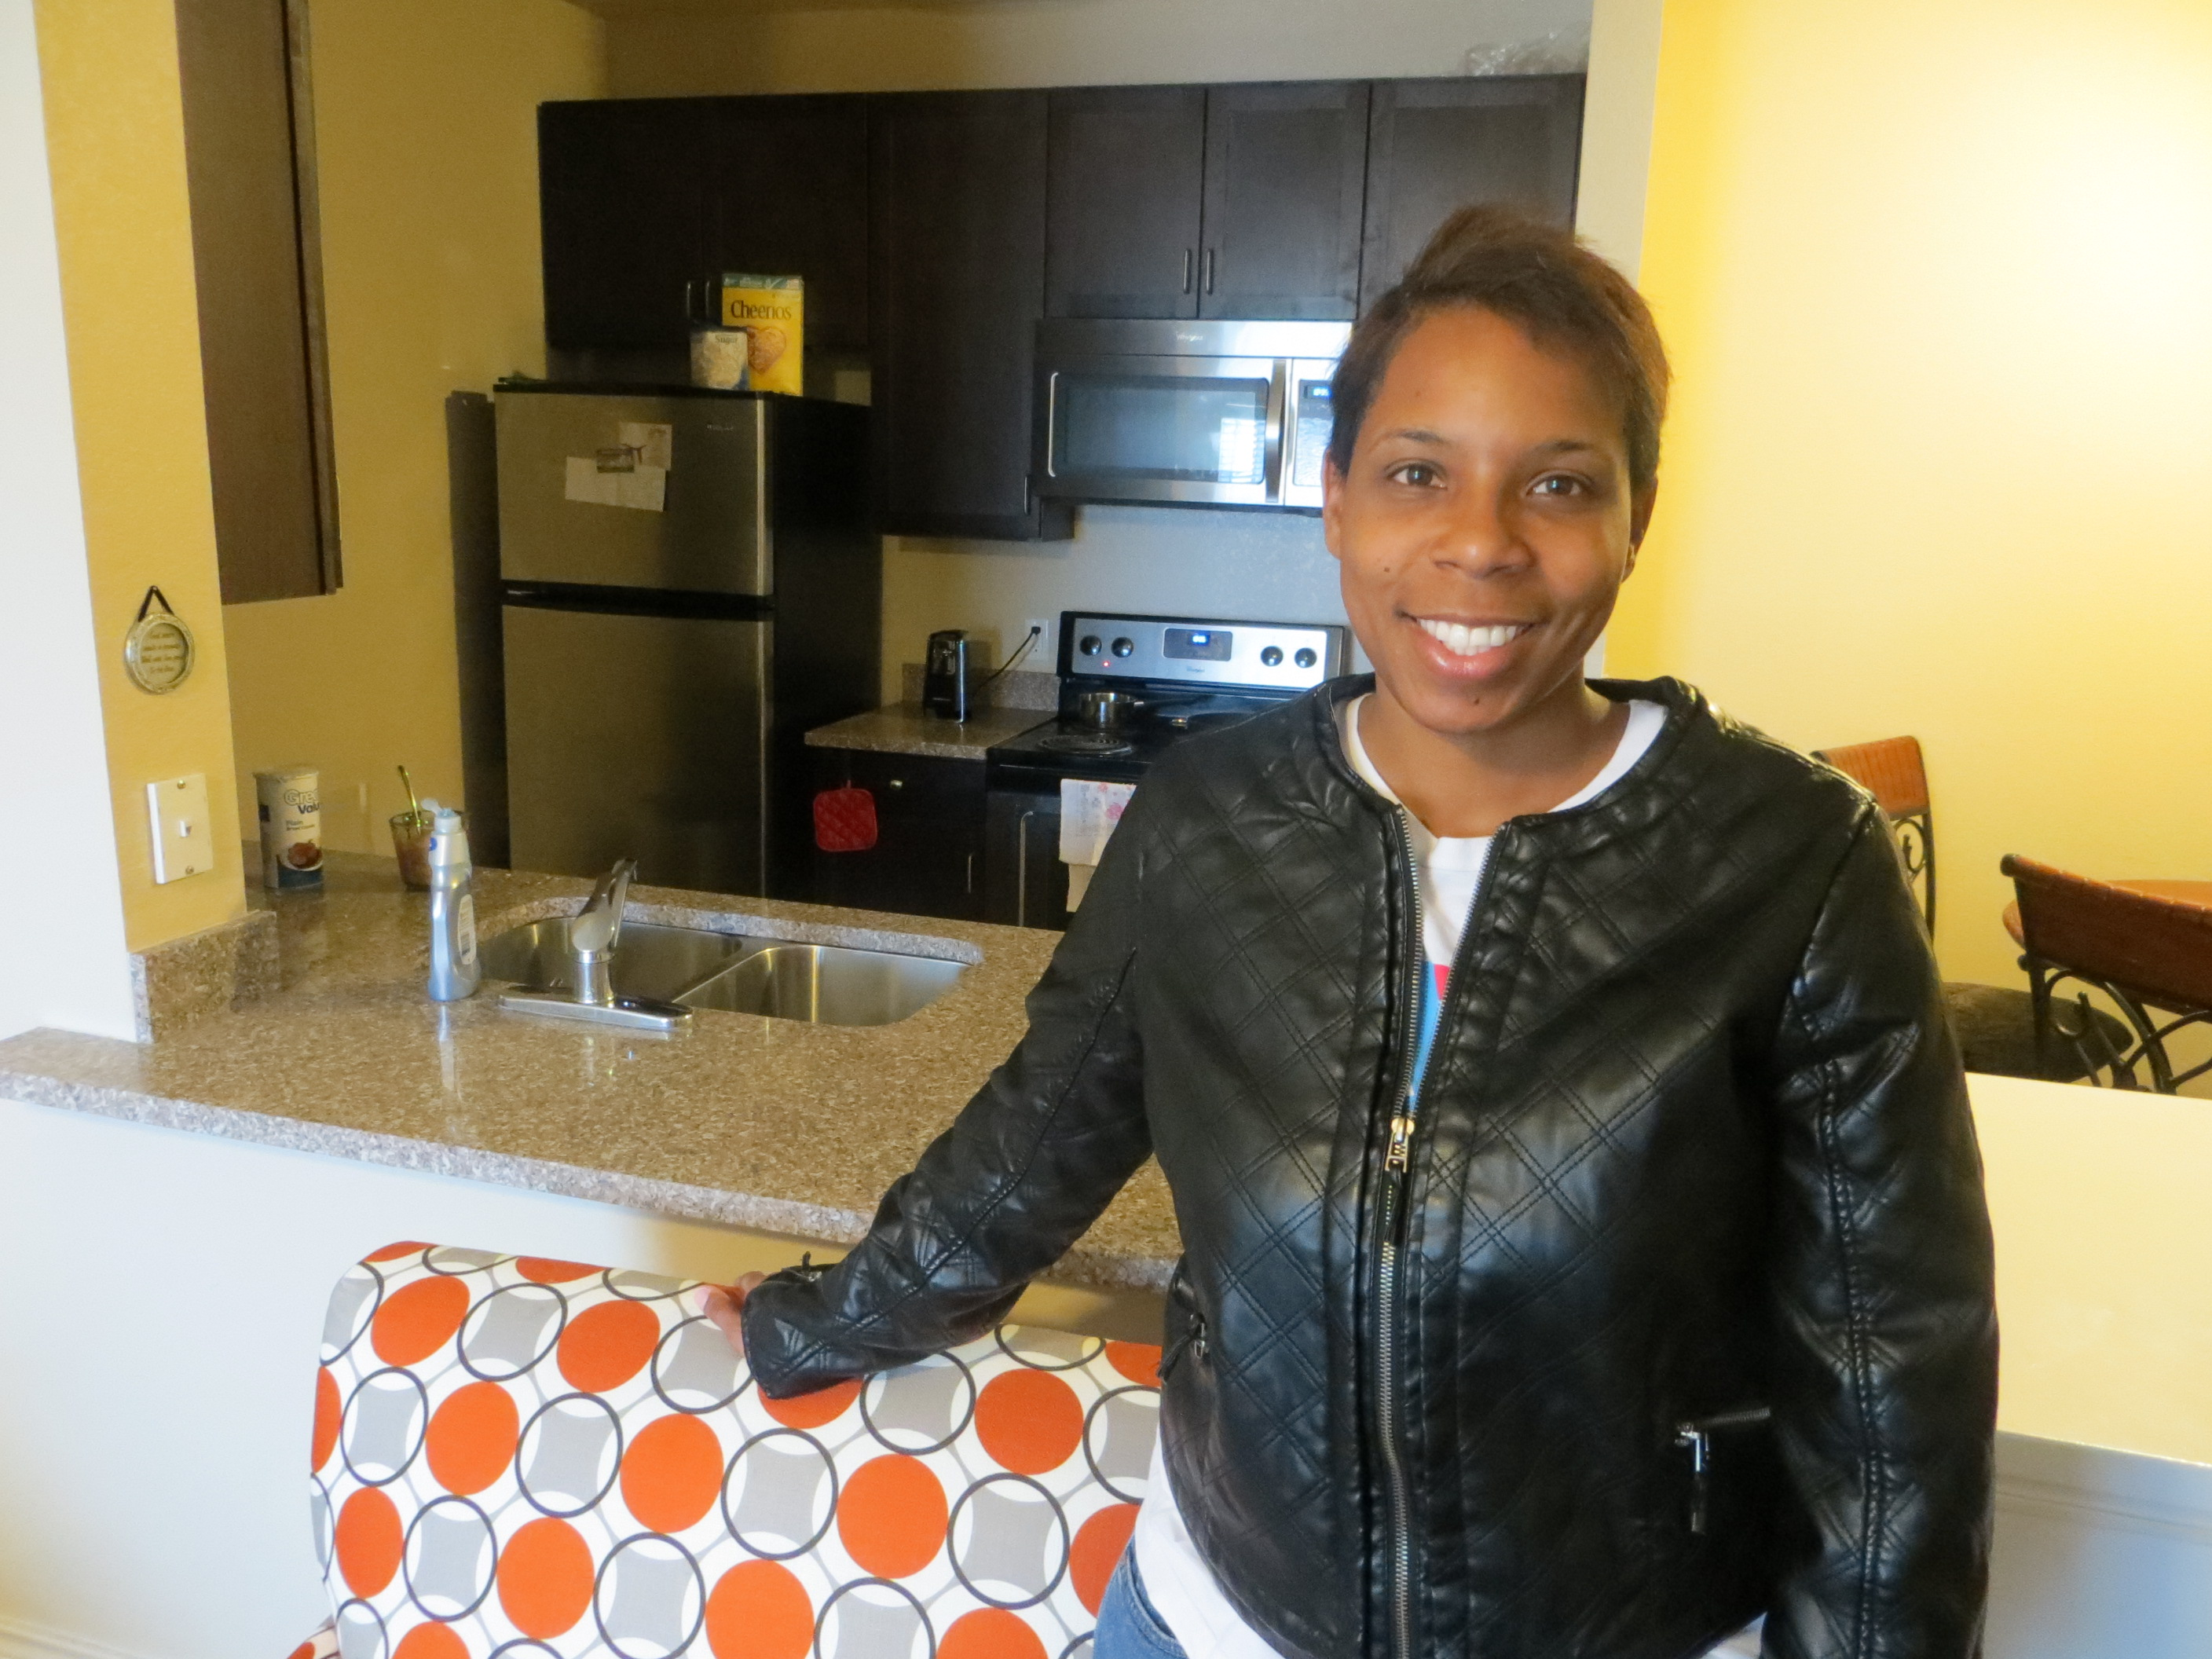 Low Income Housing In High Income Frisco Is Breaking Stereotypes   KERA News. Low Income Housing In High Income Frisco Is Breaking Stereotypes